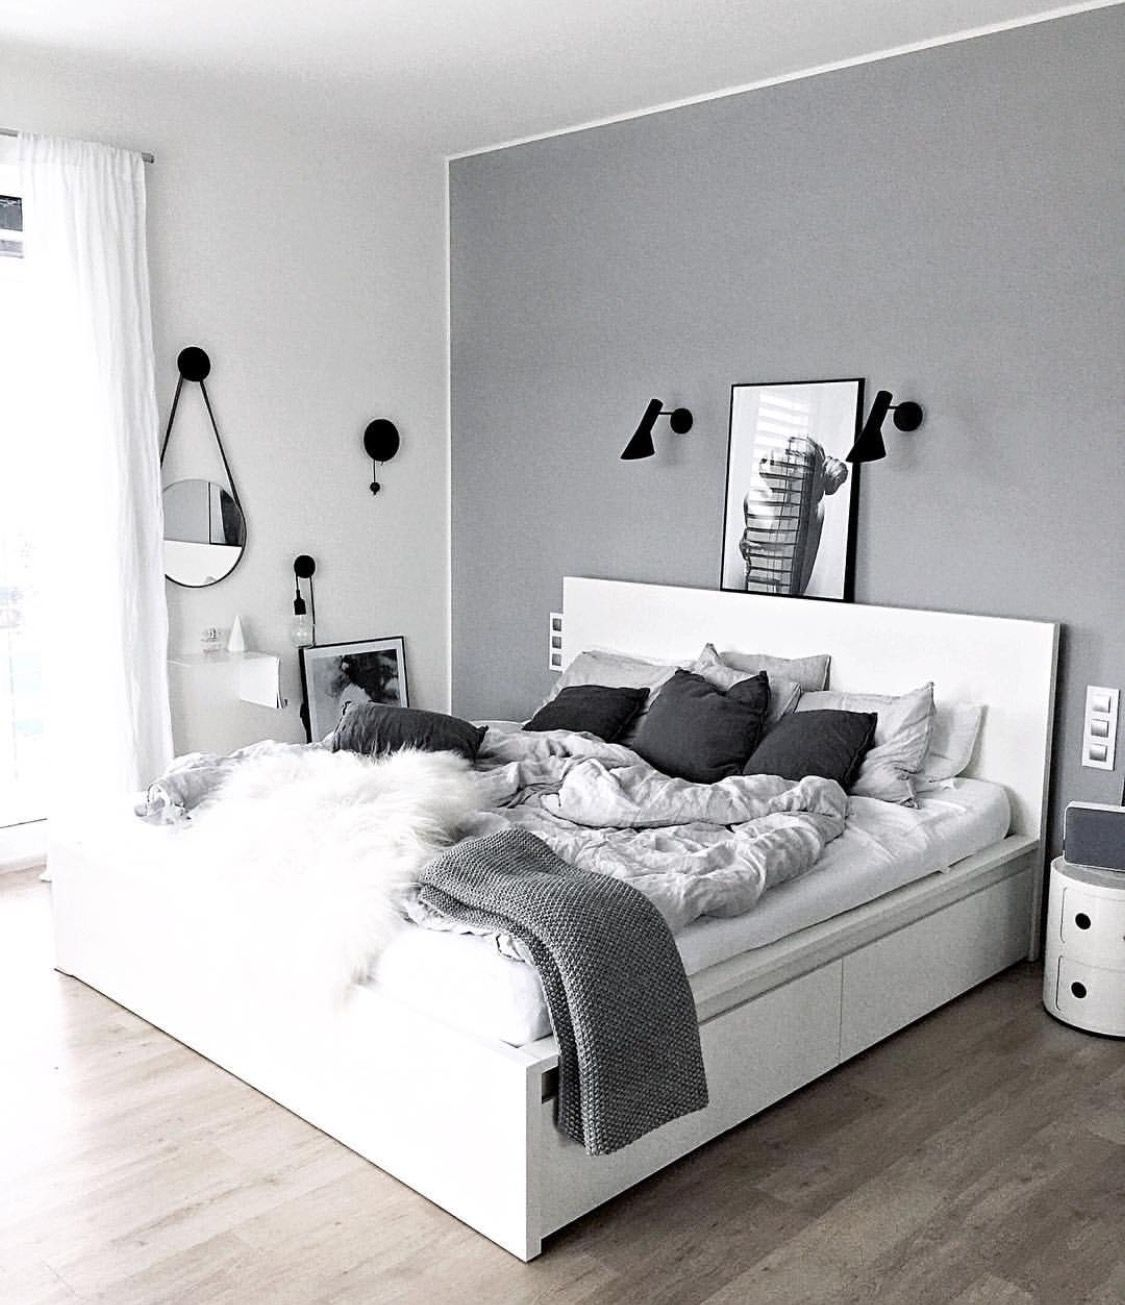 30 Stylish Gray Living Room Ideas To Inspire You White Bedroom Decor Living Room Grey Room Decor Bedroom